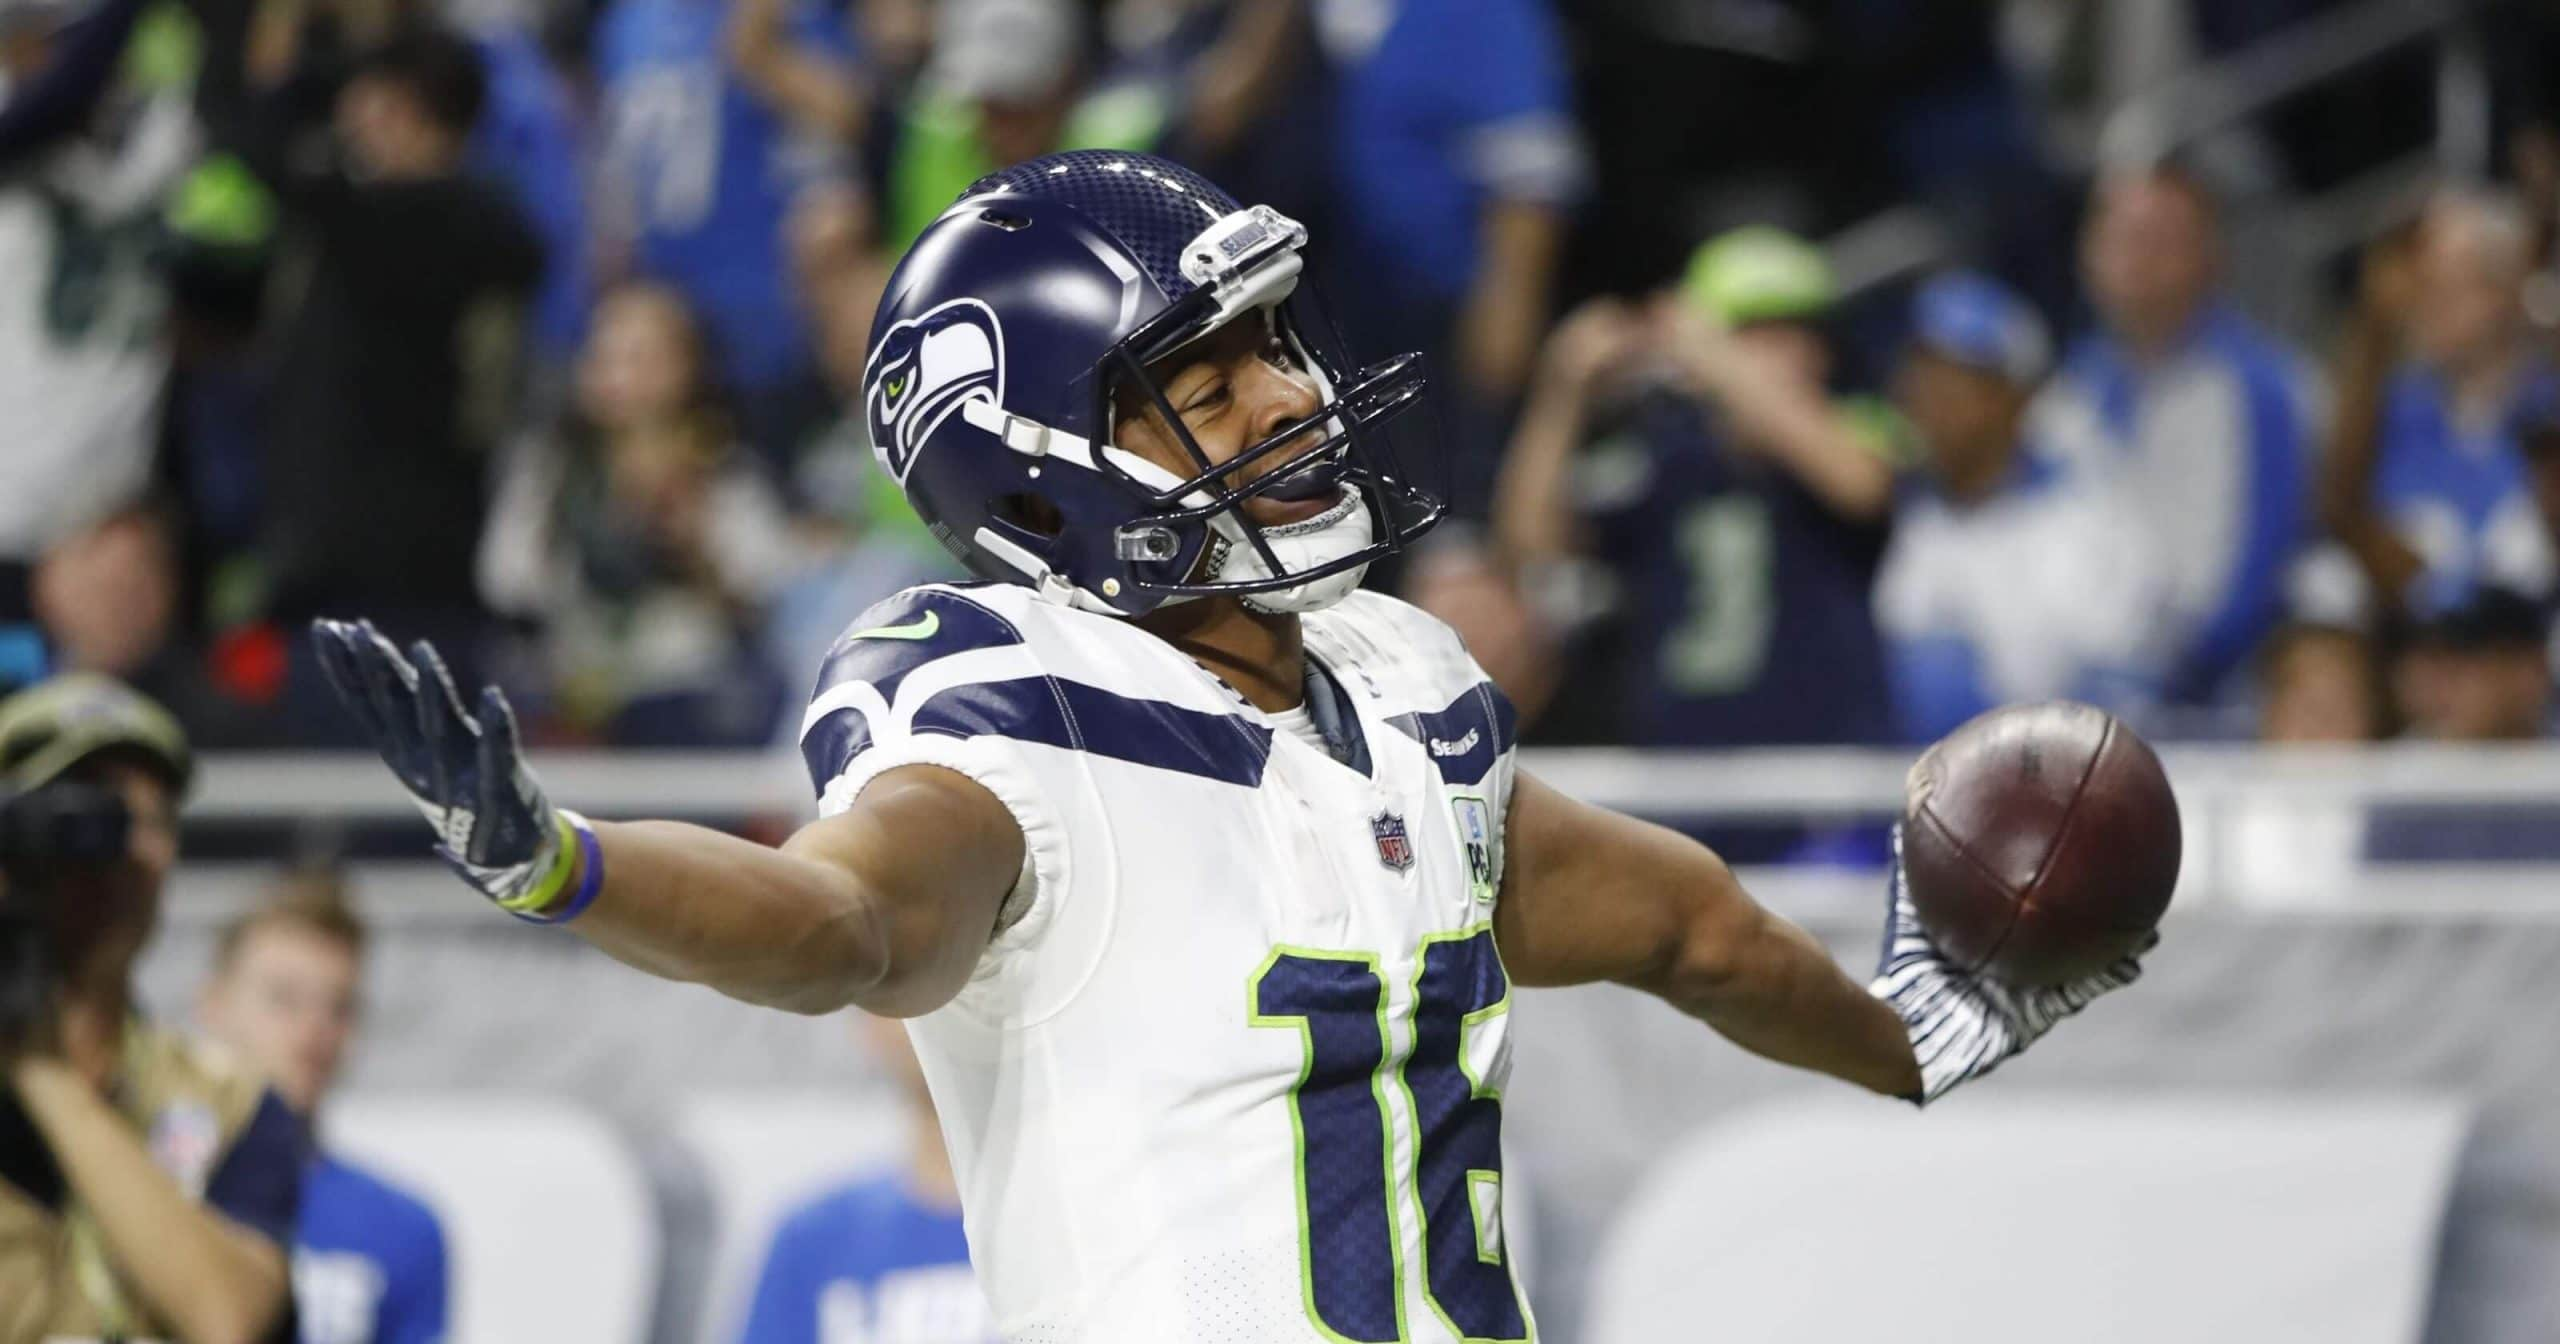 Tyler Lockett and more week 12 sneaky plays for your daily fantasy football lineup